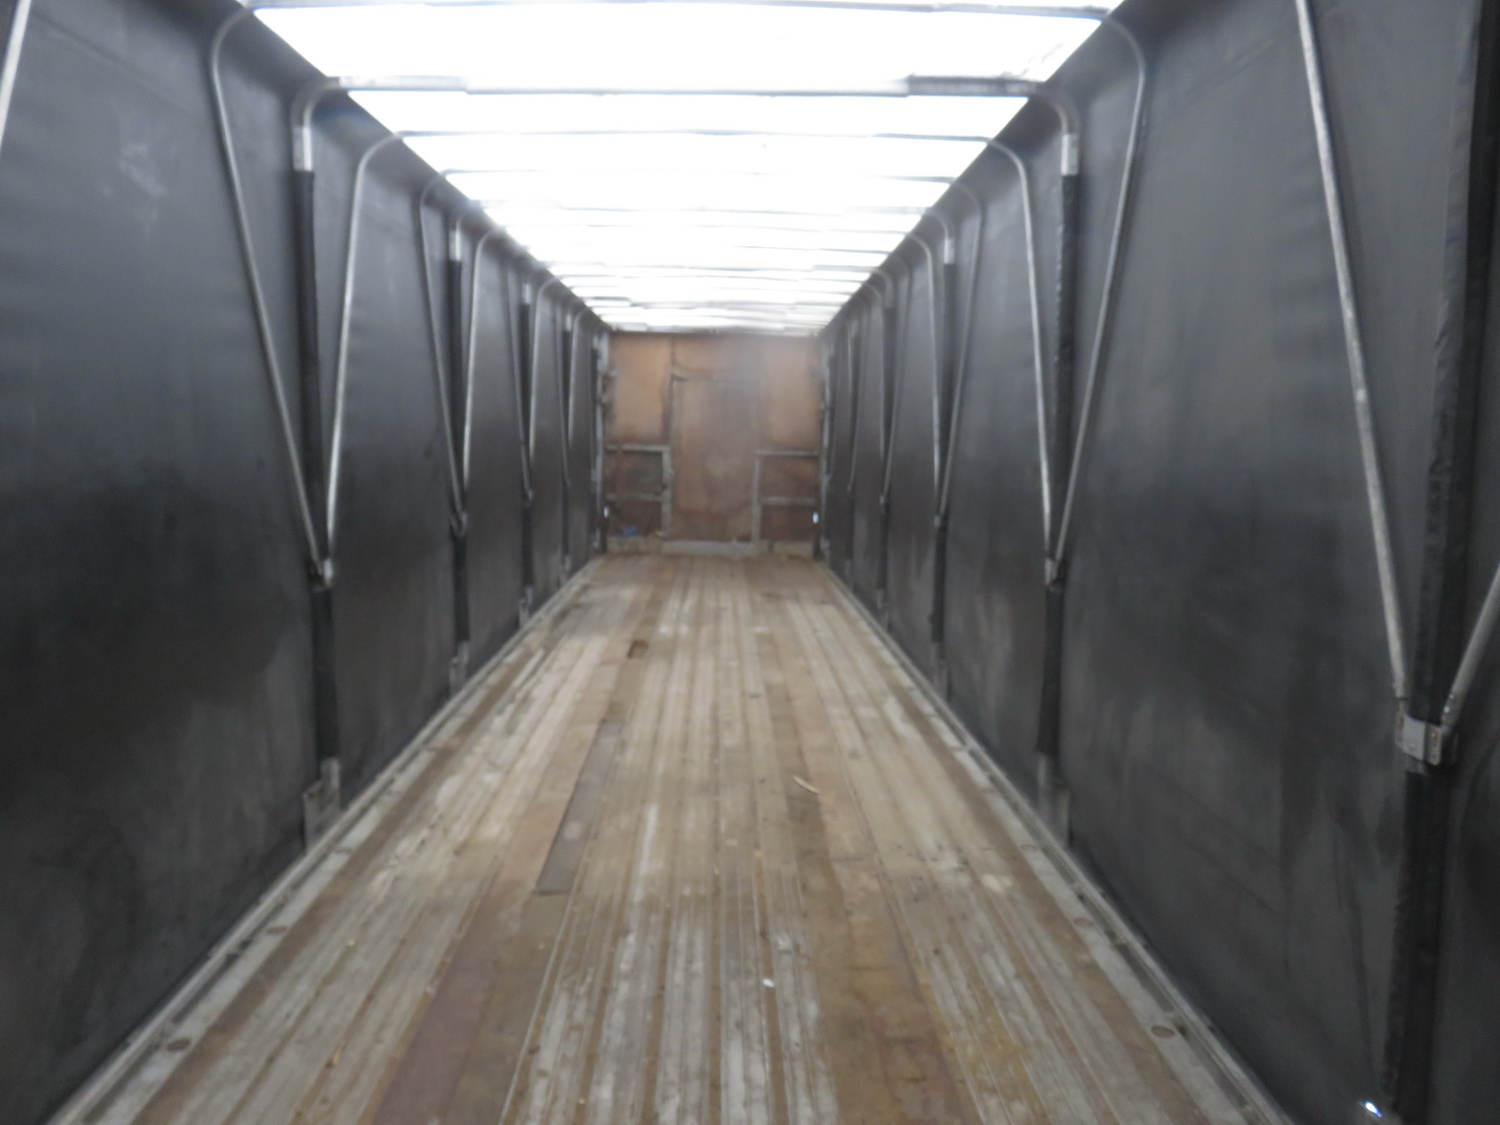 "TRANSCRAFT EAGLE W2, 48' X 96"" TANDEM AXLE CURTAIN SIDE TRAILER - S/N 1TTF48206R1042095 - Image 5 of 7"